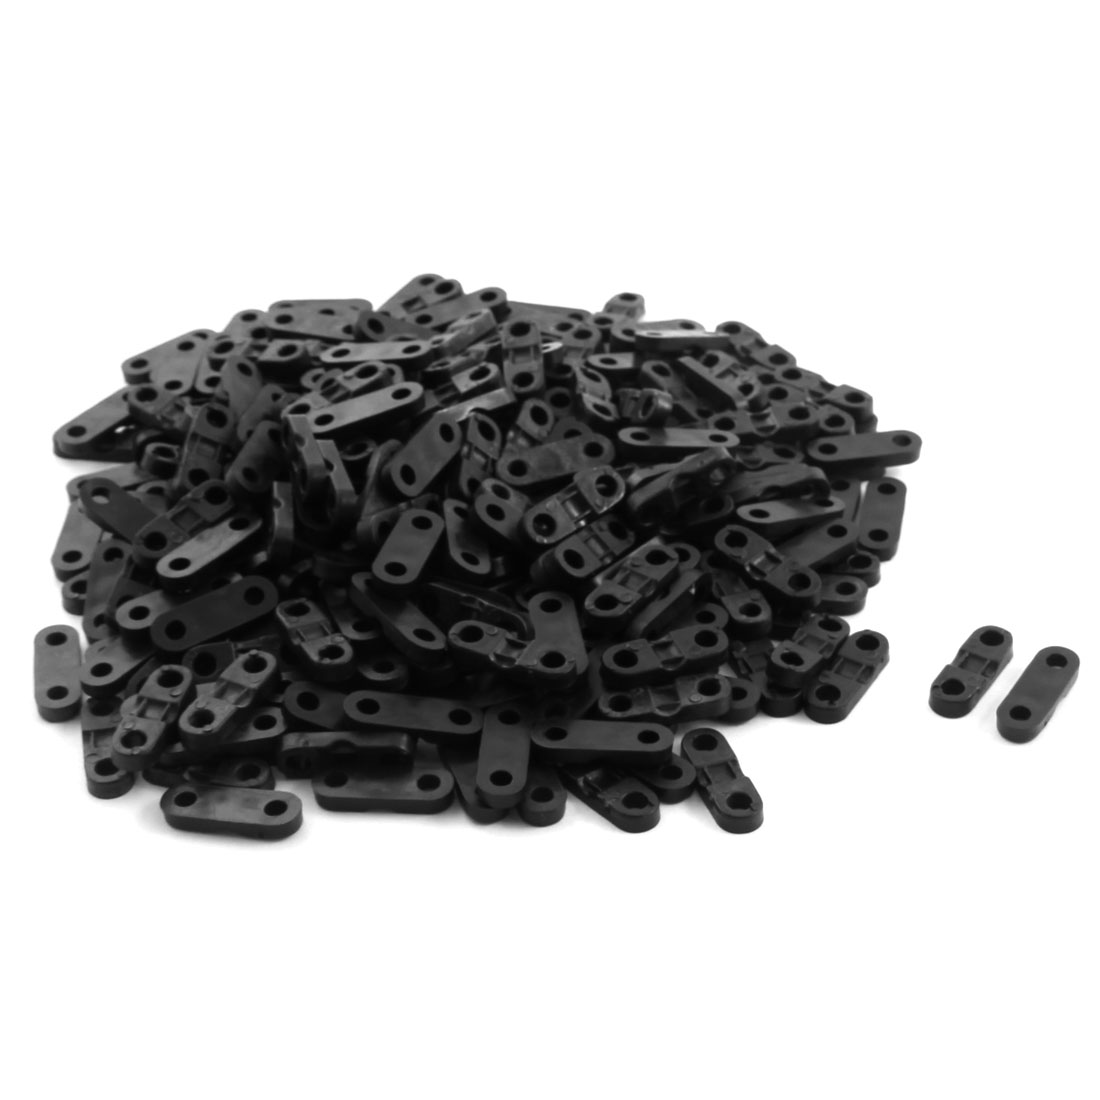 300Pcs 4x 1mm Black Plastic Cable Clamp Wire Tie Mount Screws Fixed Base